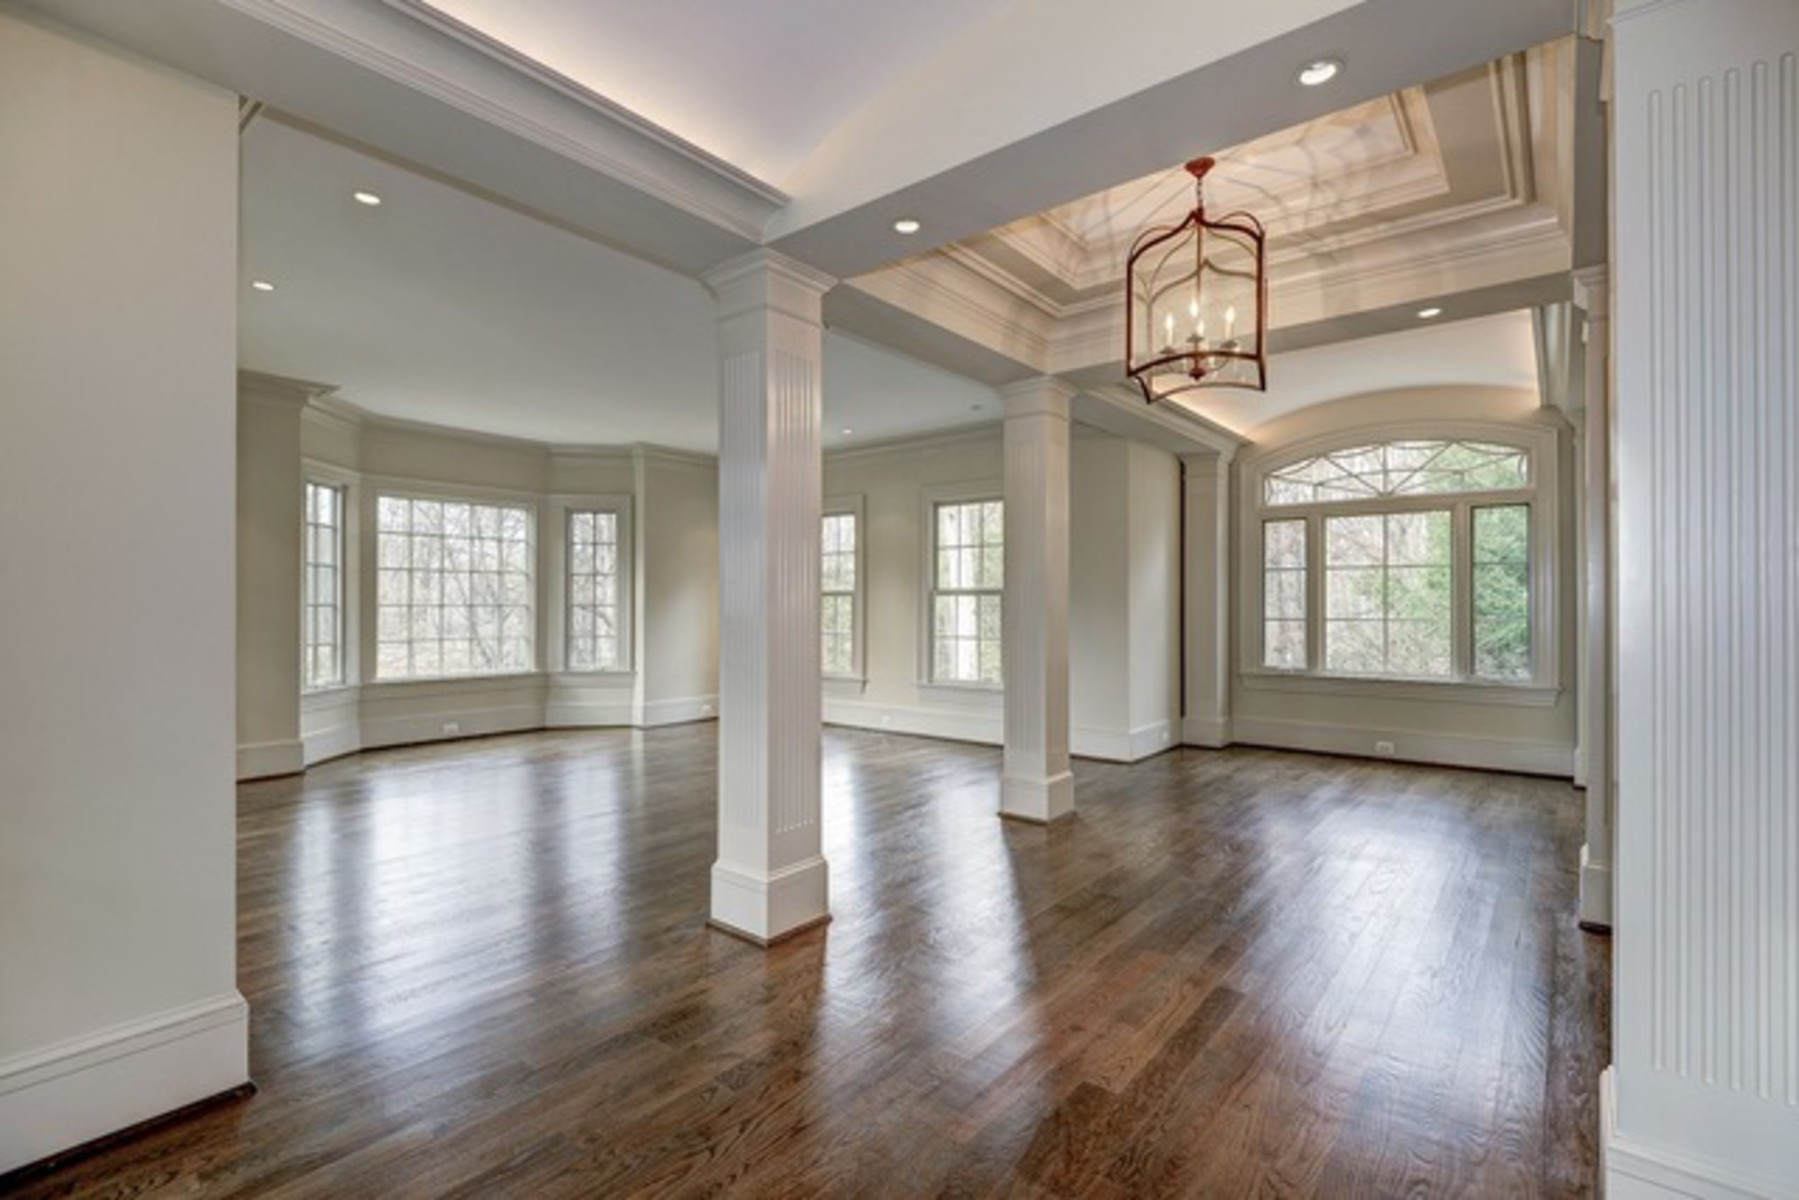 Additional photo for property listing at 7426 Dulany Drive, Mclean  McLean, Virginia 22101 United States